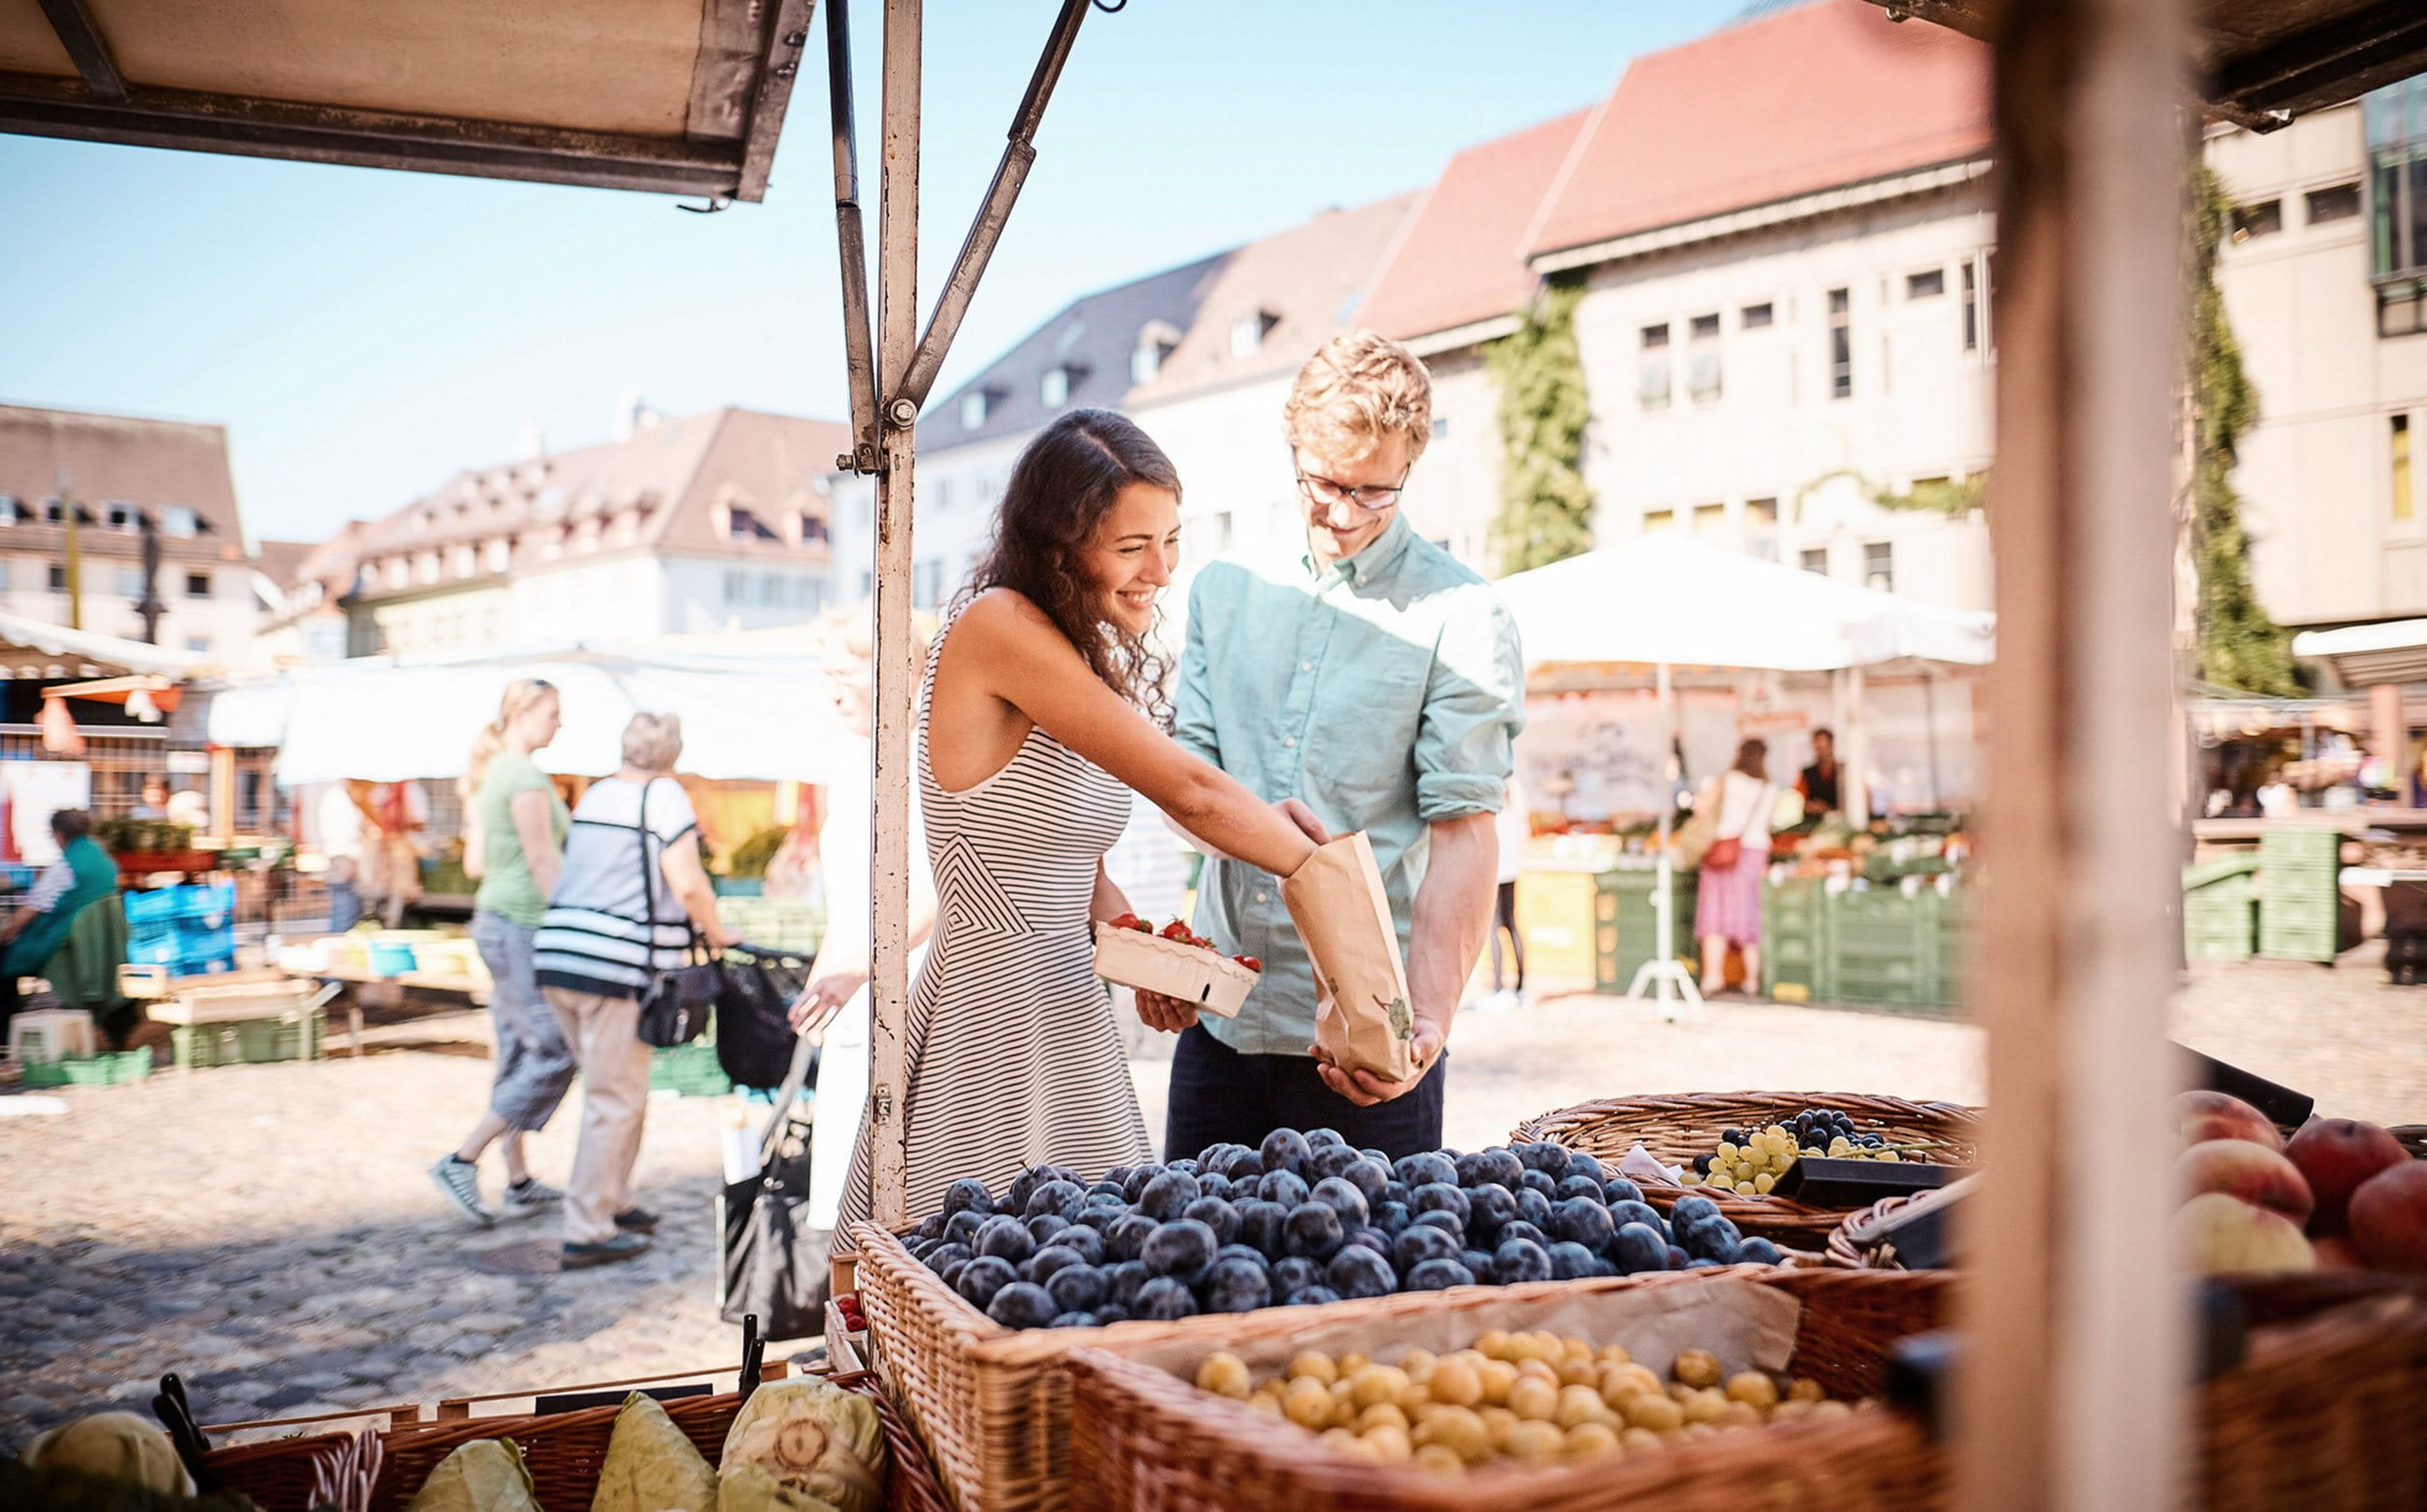 A couple at the market